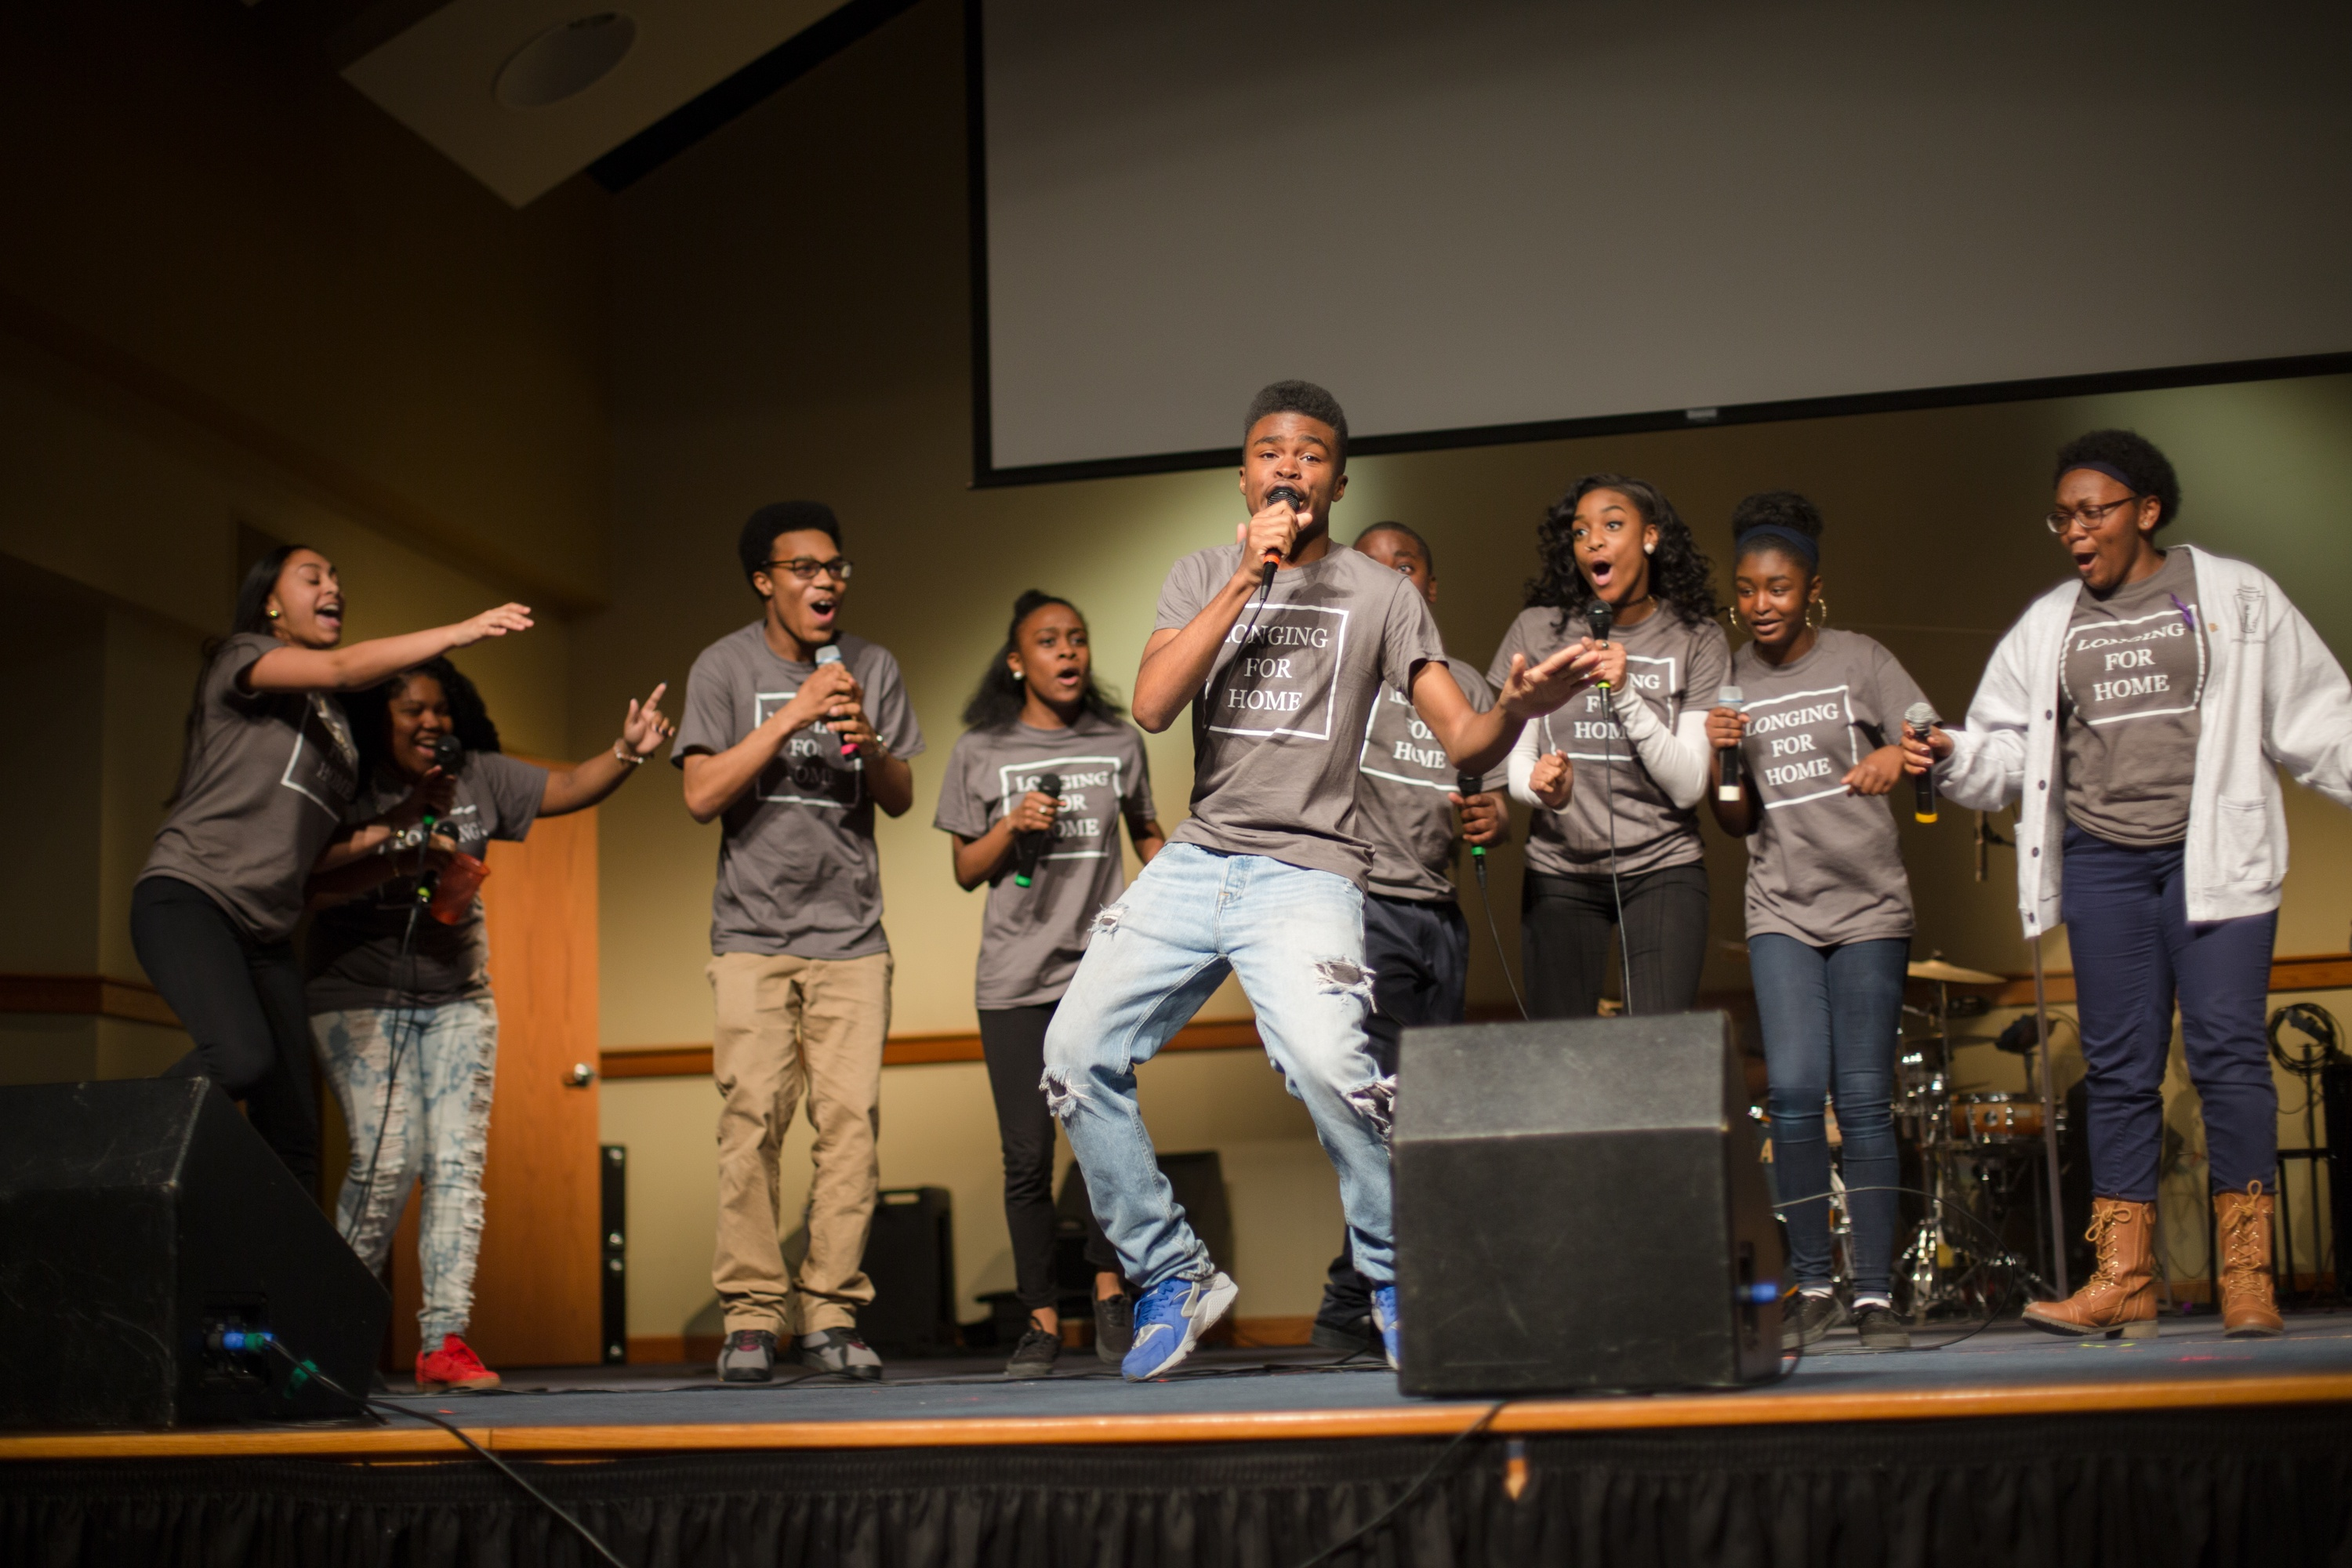 """The 2017 theme for New City Kids is """"Out of Darkness,"""" from 1 Peter 2:9. God uses New City Kids to invite young people to find their purpose in life and realize that they have a calling even in their dark and negative environment. New City Kids youngsters performed fundraising concerts four times in the NYC/New Jersey area in March and April. Kerusso is proud to partner with them and support their mission!"""